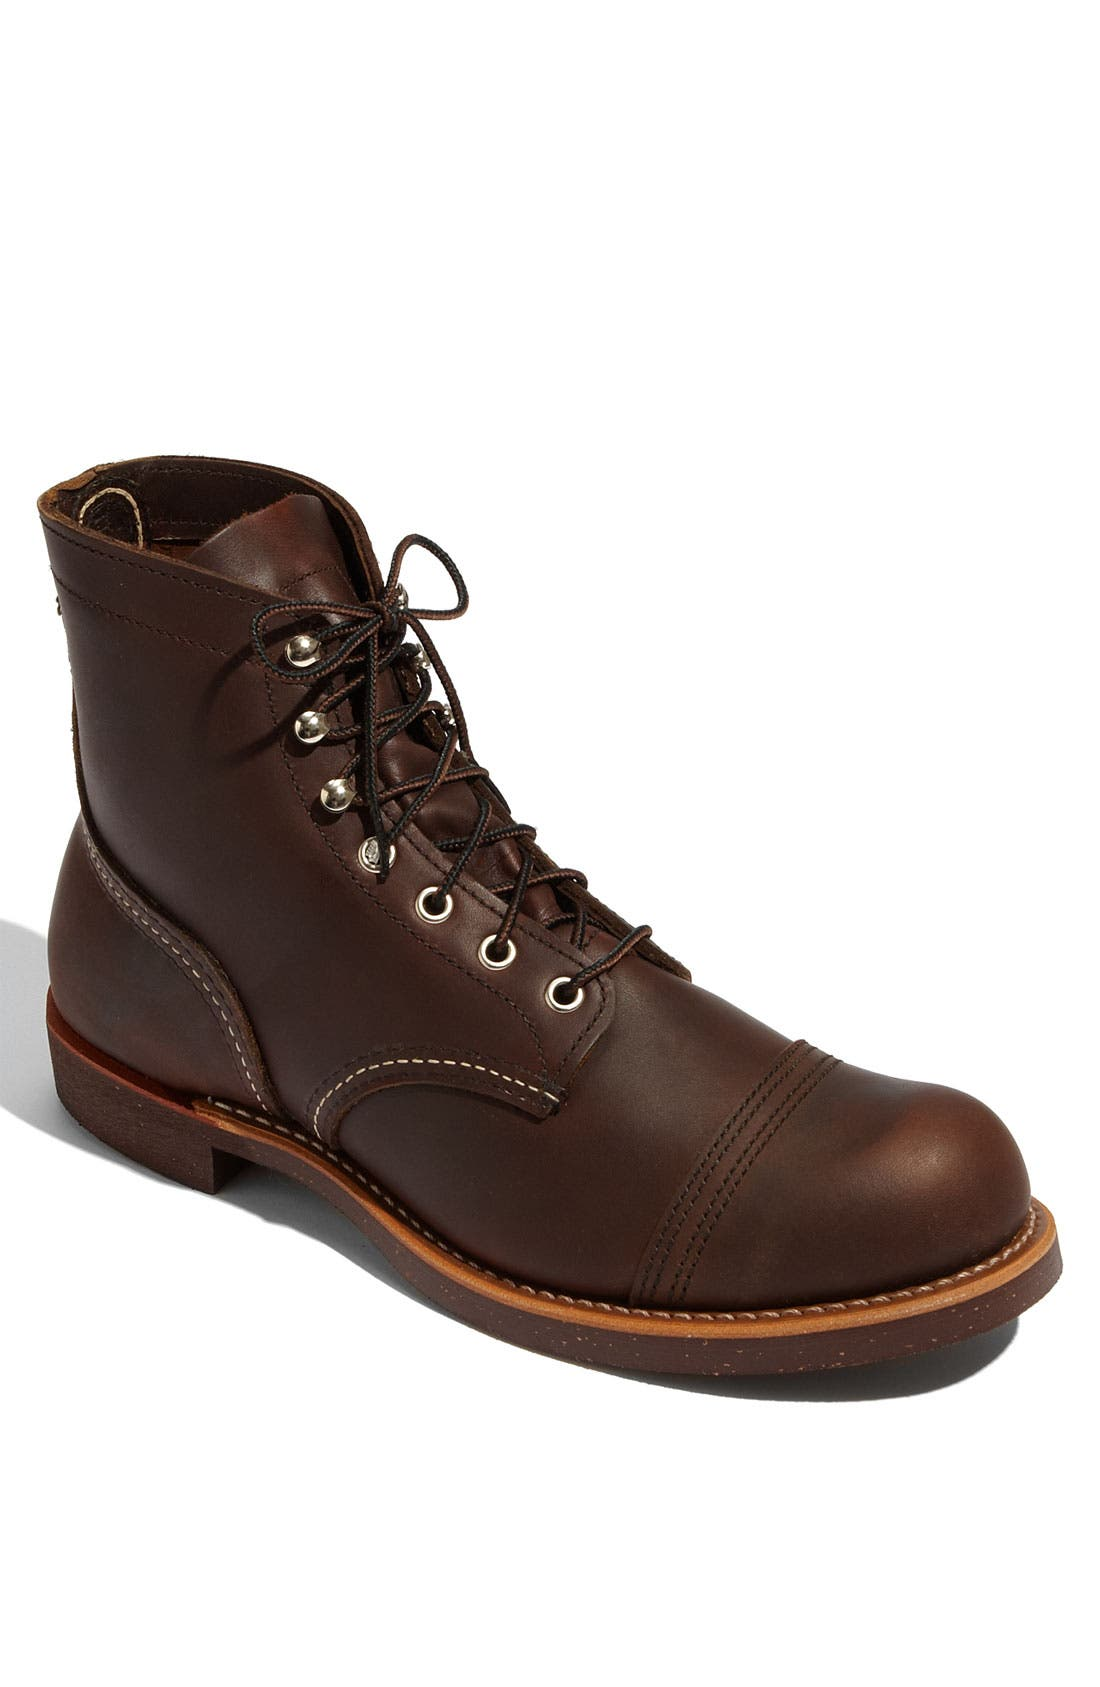 Alternate Image 1 Selected - Red Wing 'Iron Ranger' 6 Inch Boot (Men)